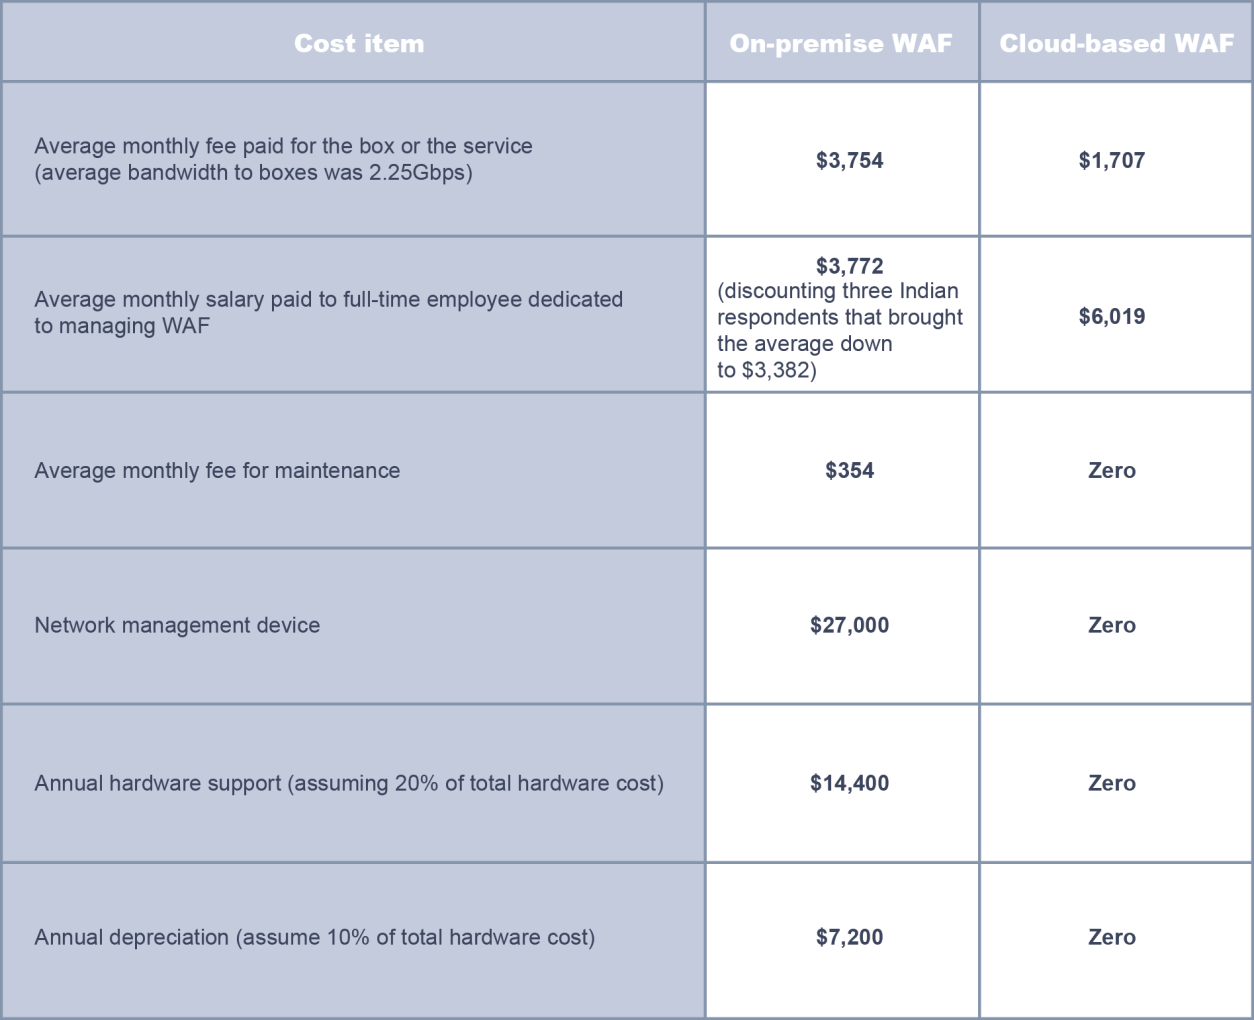 The cost of on-premise and cloud-based WAF Source: Ovum and industry sources Appendix Methodology Ovum conducted 50 interviews with IT decision-makers across North America, Europe, and Asia- Pacific.